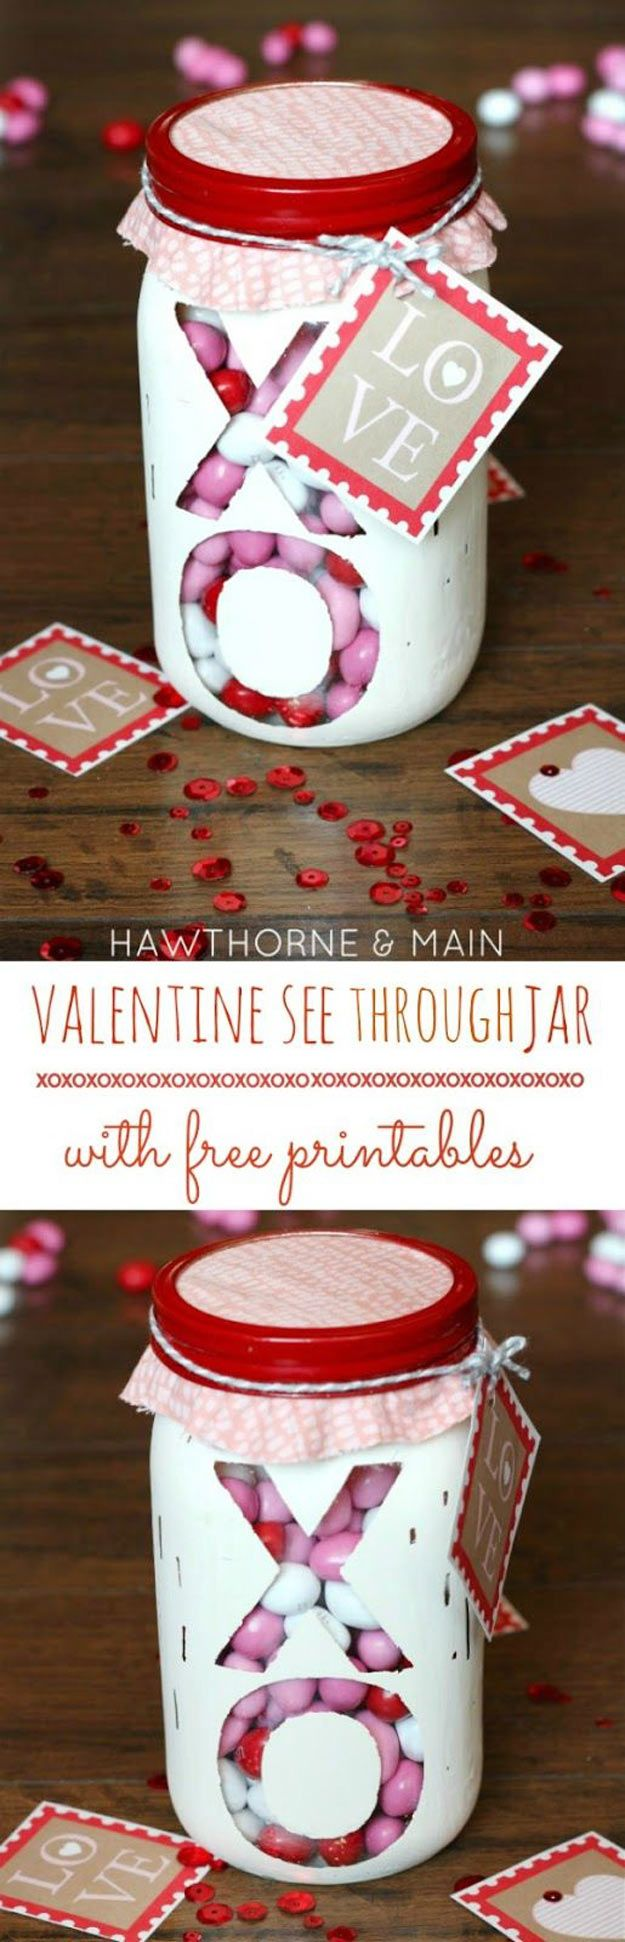 1000 Ideas About Valentine Gifts On Pinterest Diy Valentine 39 S Gifts B